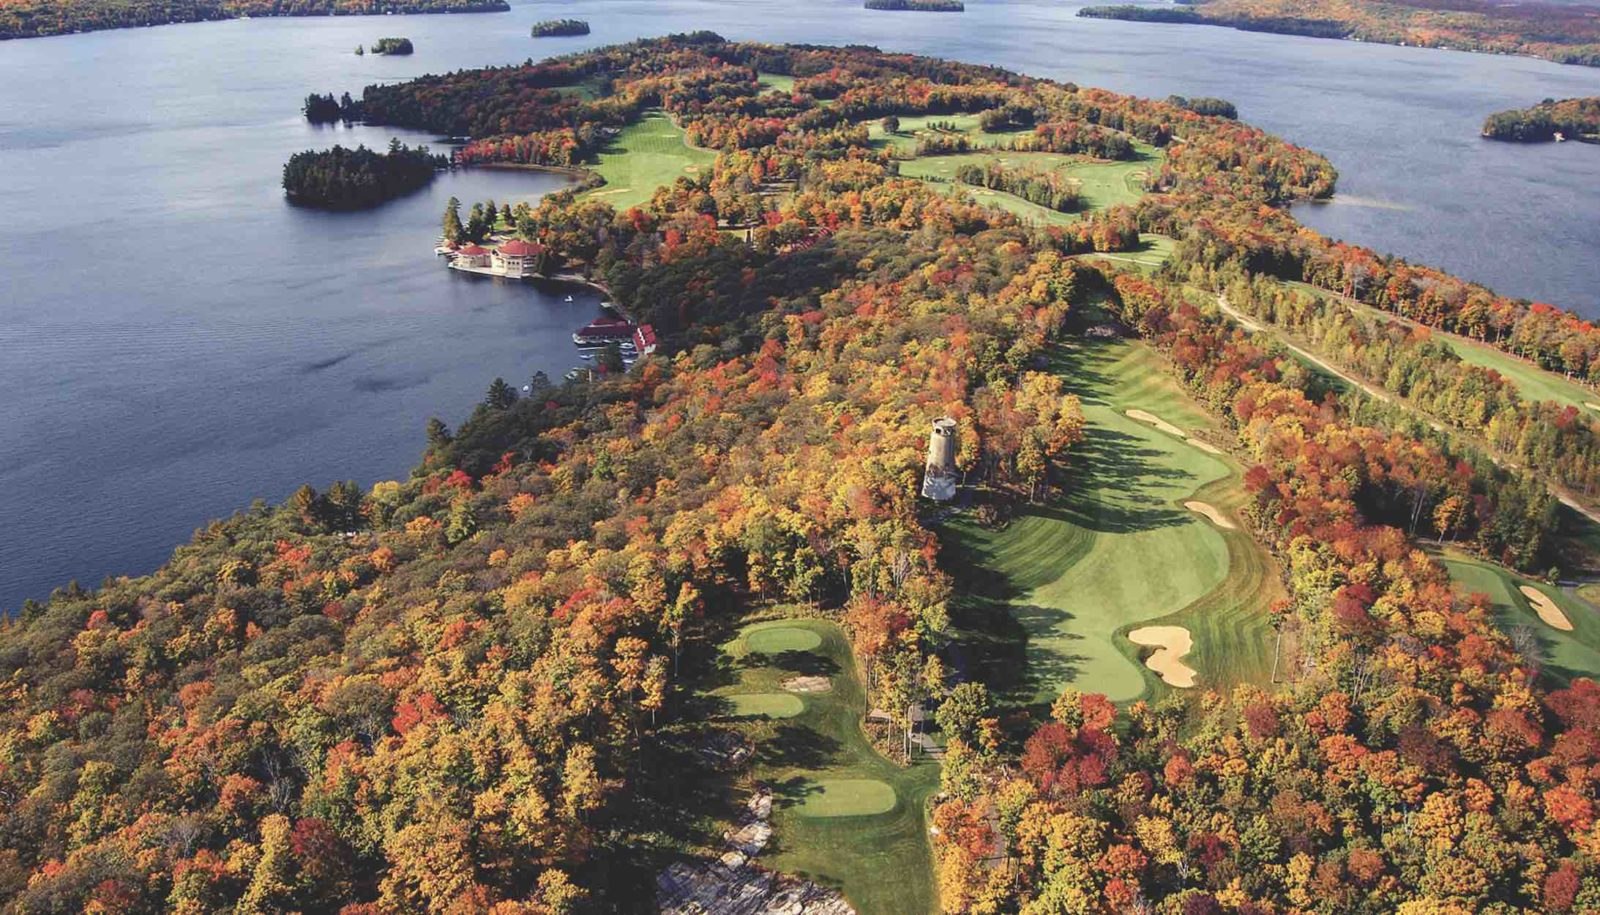 Aerial view of Bigwin Island and golf course on magnificent Lake of Bays